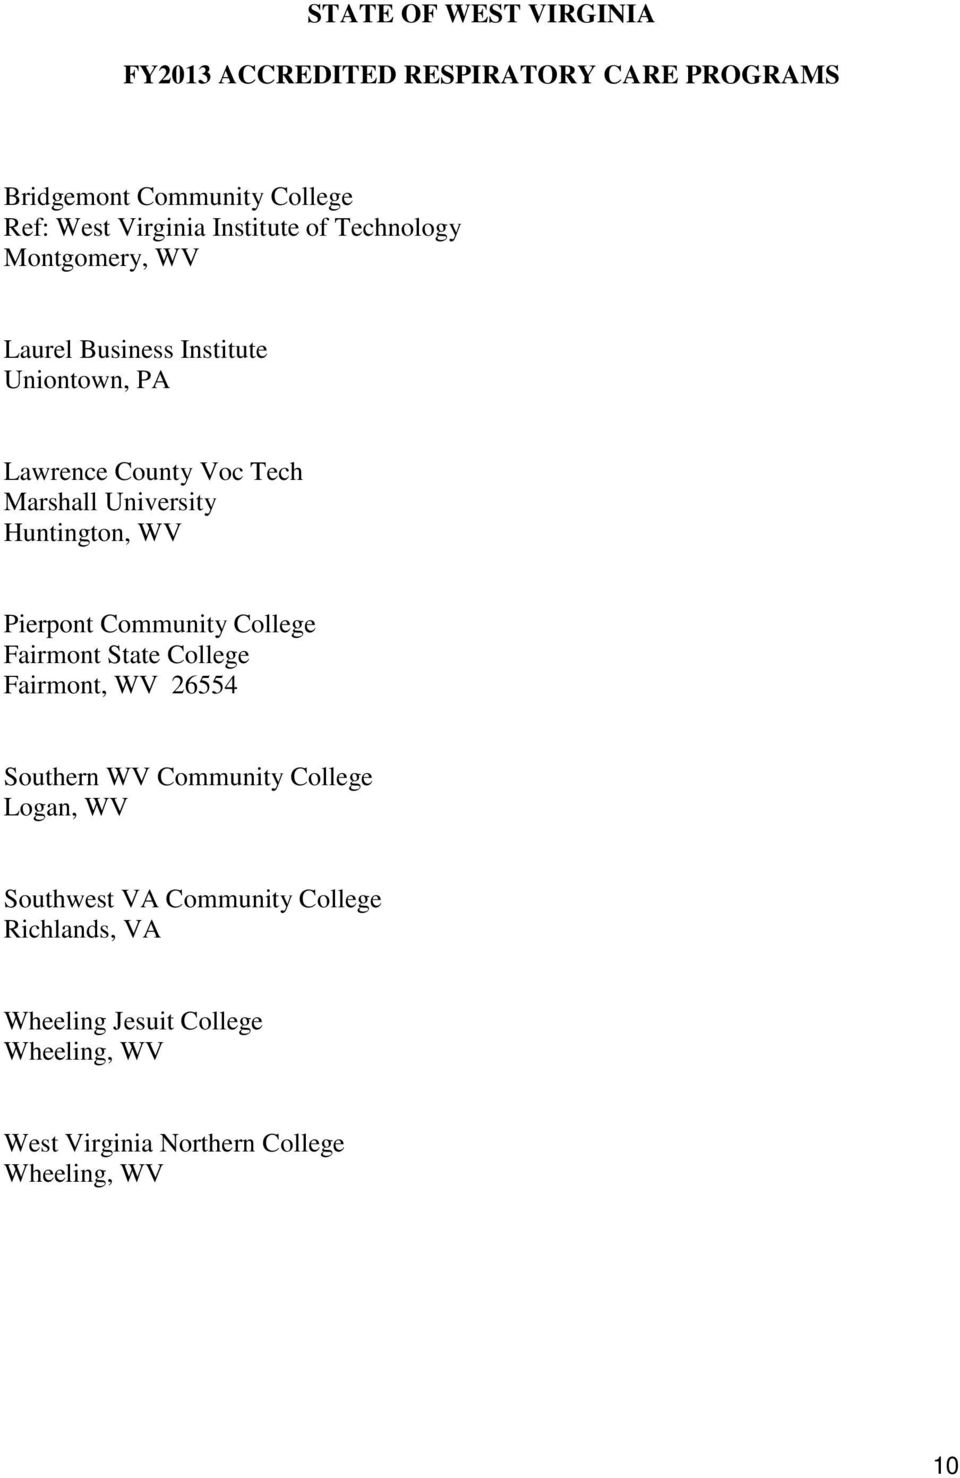 STATE OF WEST VIRGINIA BOARD OF RESPIRATORY CARE - PDF